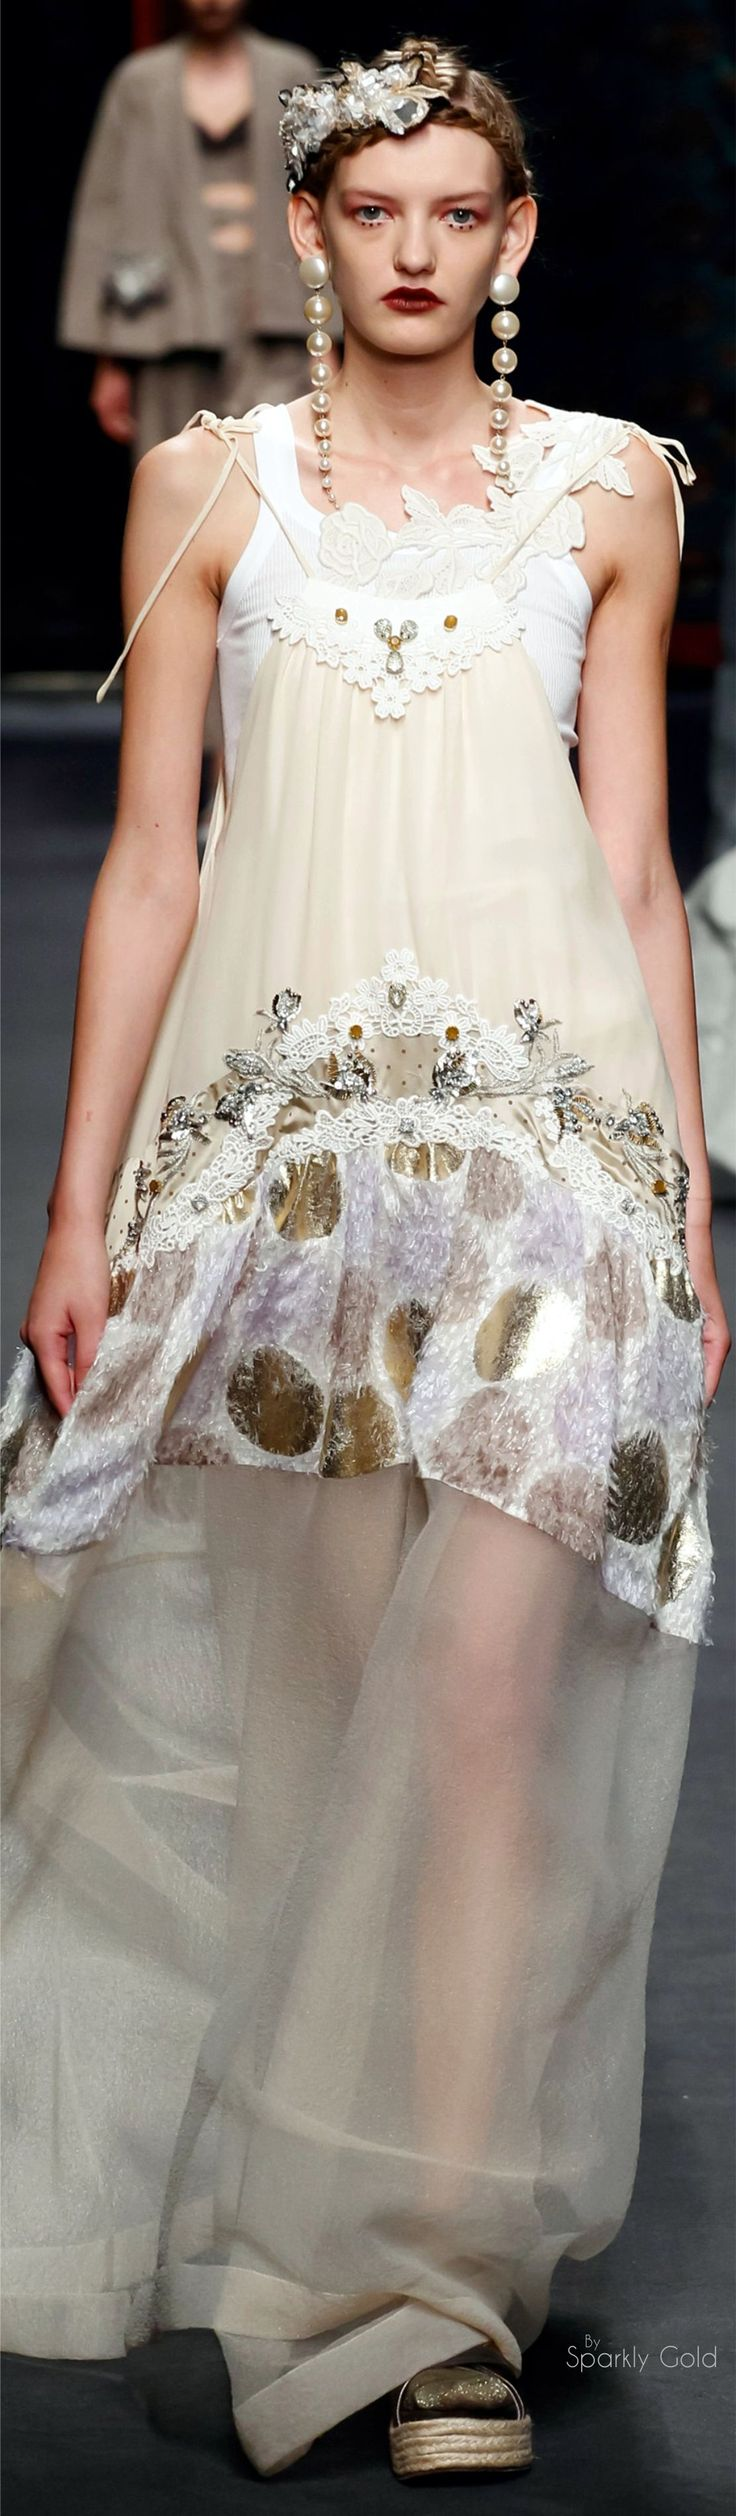 Antonio Marras, Spring/Summer 2016, Ready to Wear